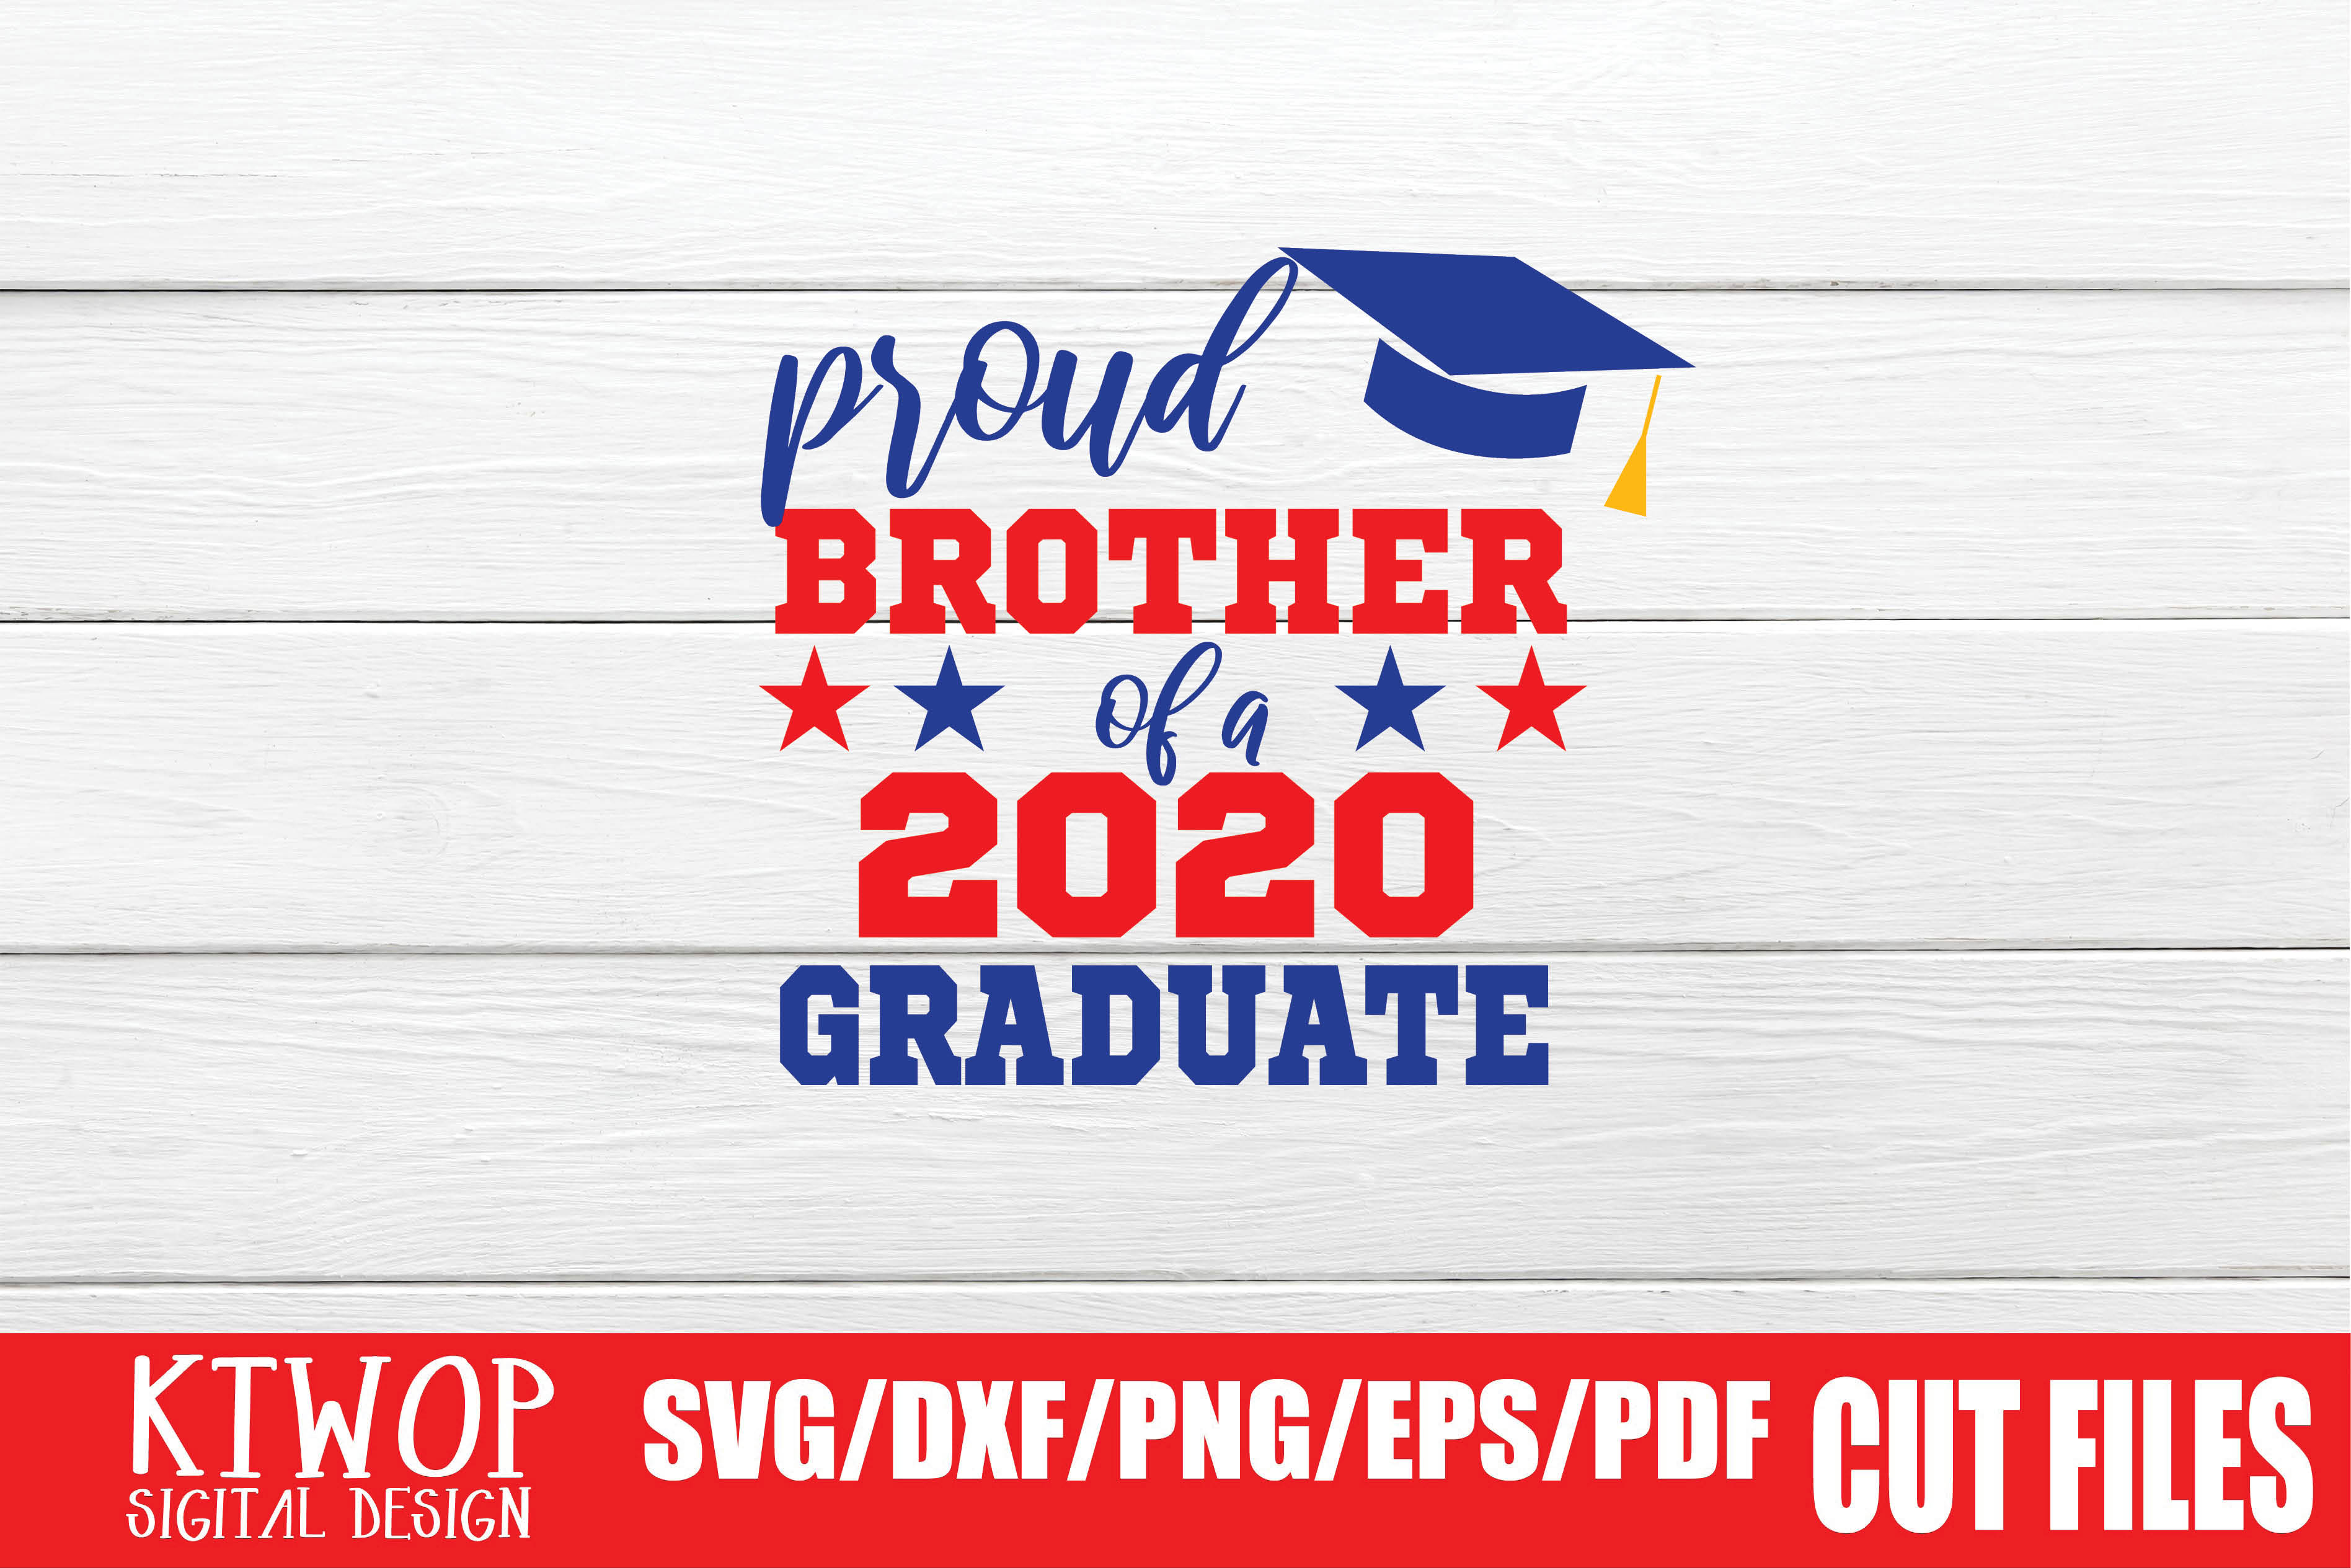 Download Free Proud Brother Of A 2020 Graduate Graphic By Ktwop Creative Fabrica for Cricut Explore, Silhouette and other cutting machines.